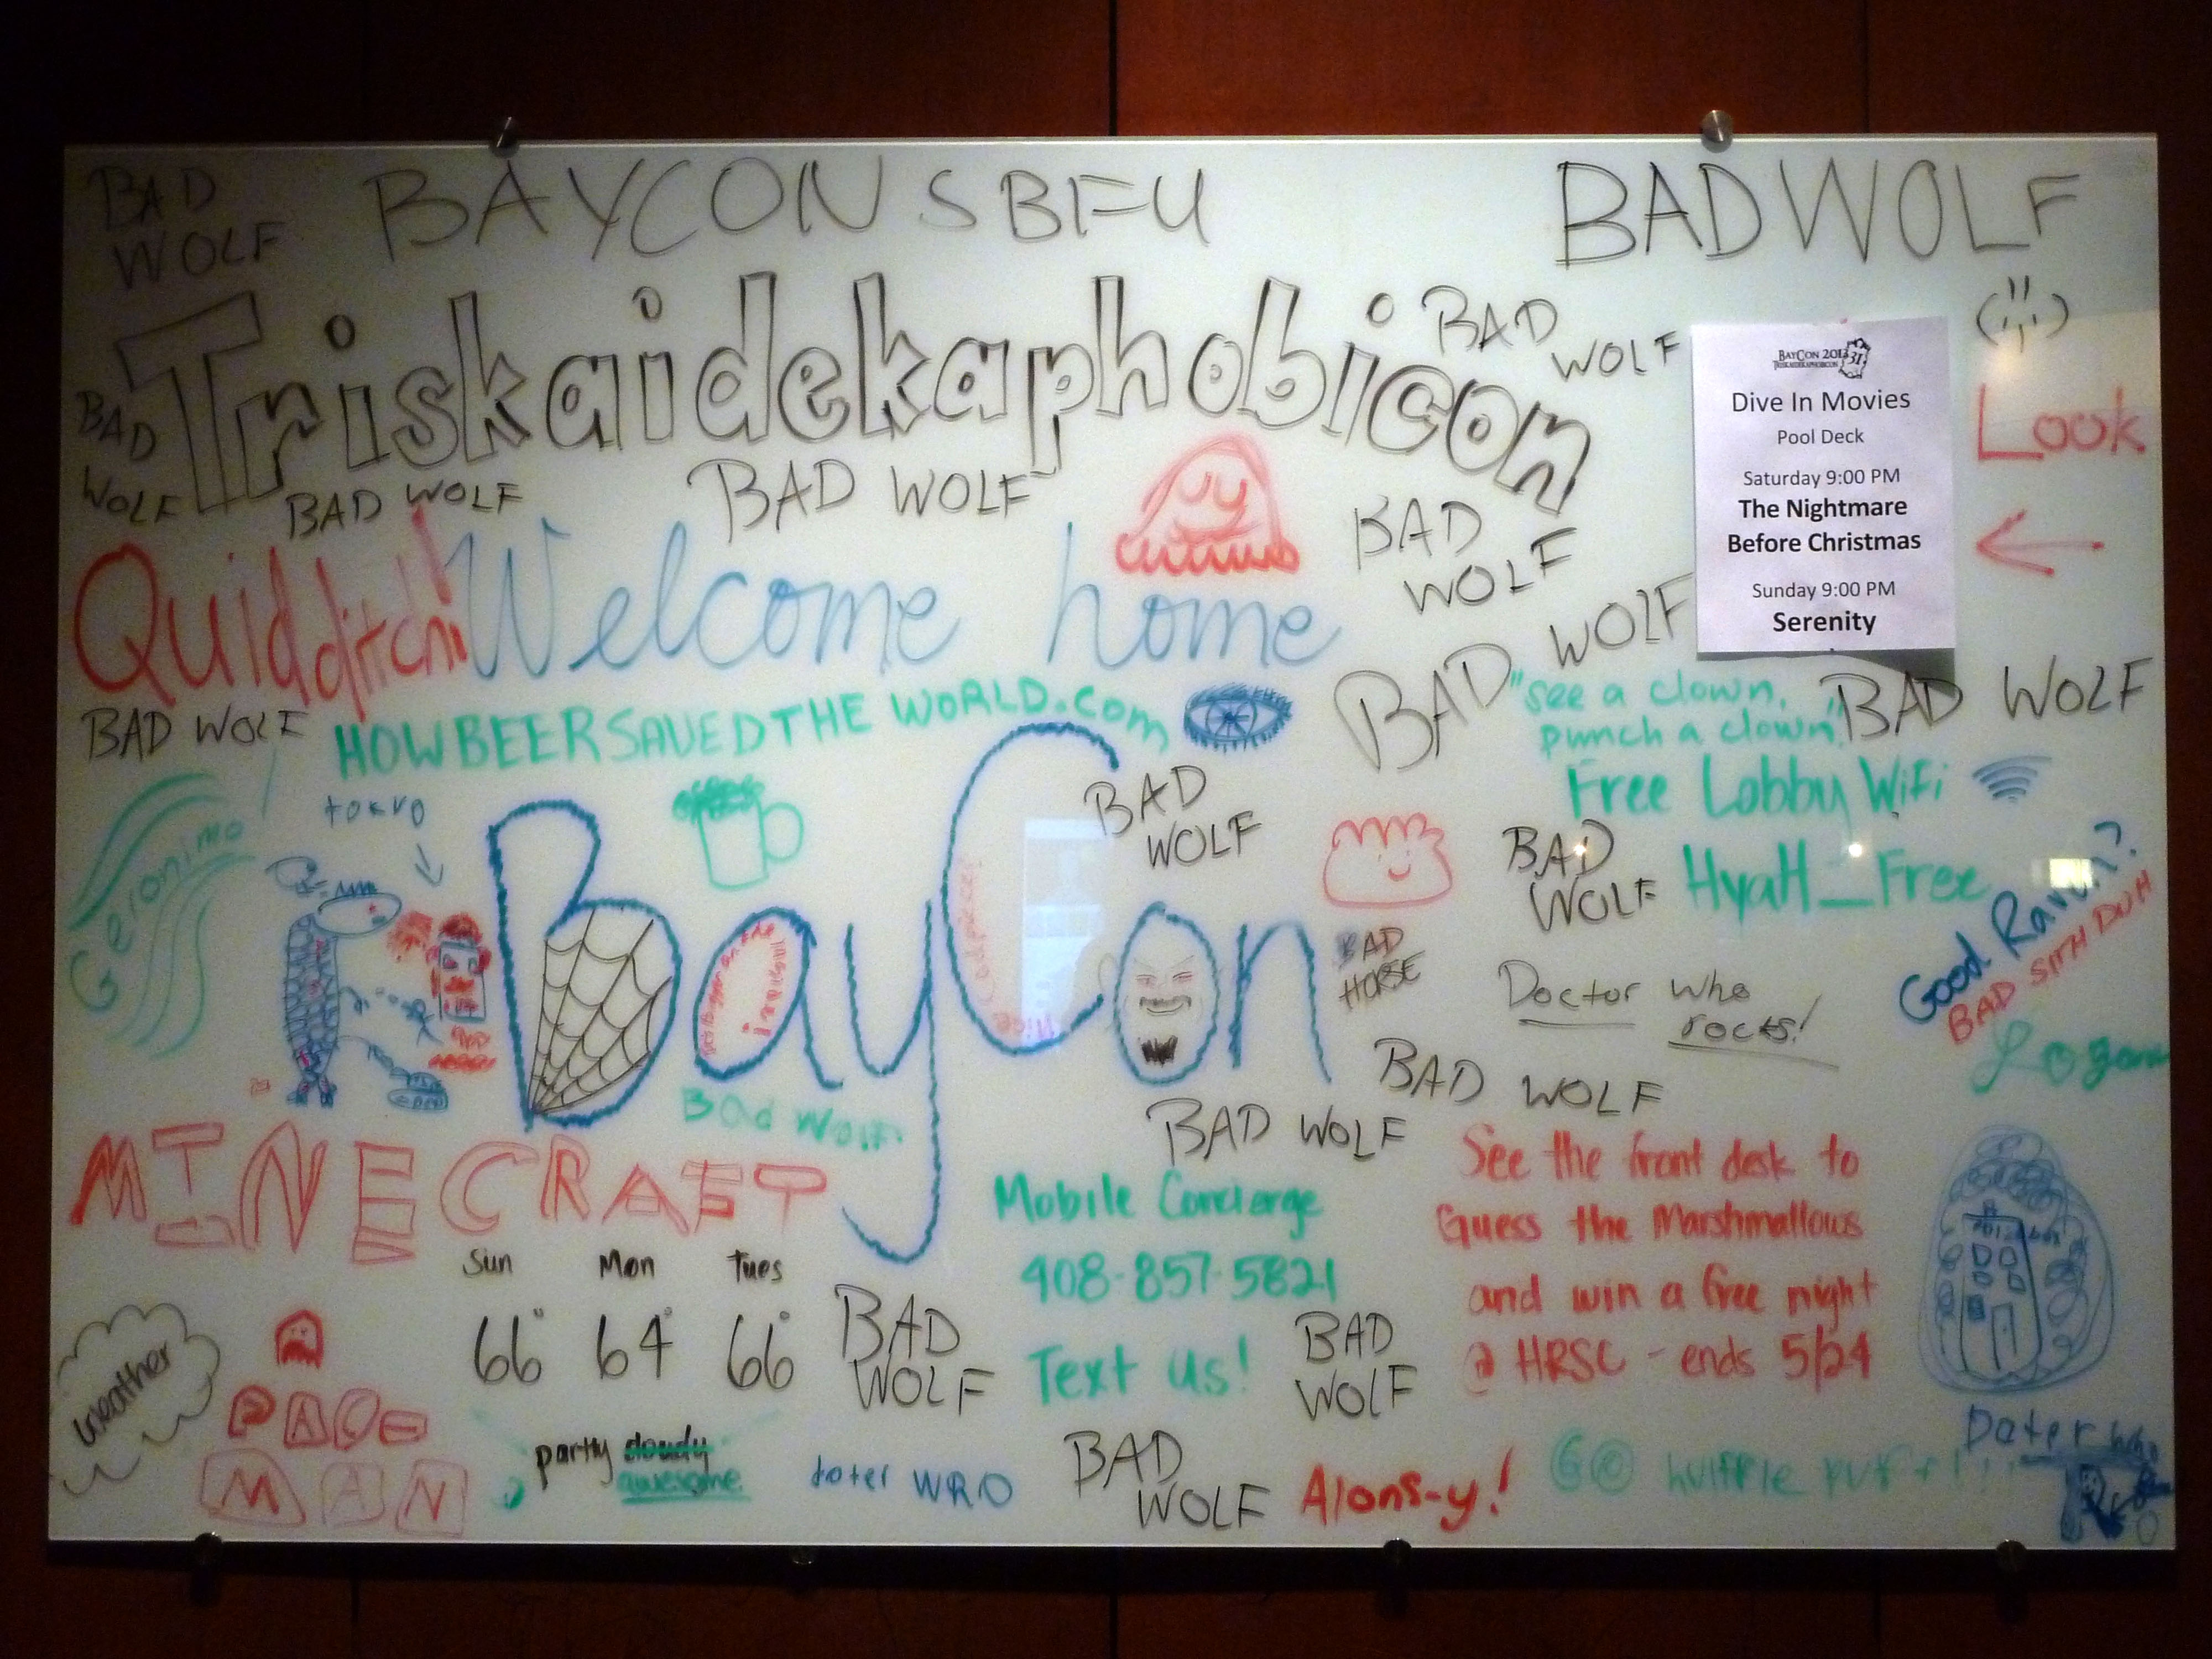 BayCon participants embellished the welcome sign profusely.